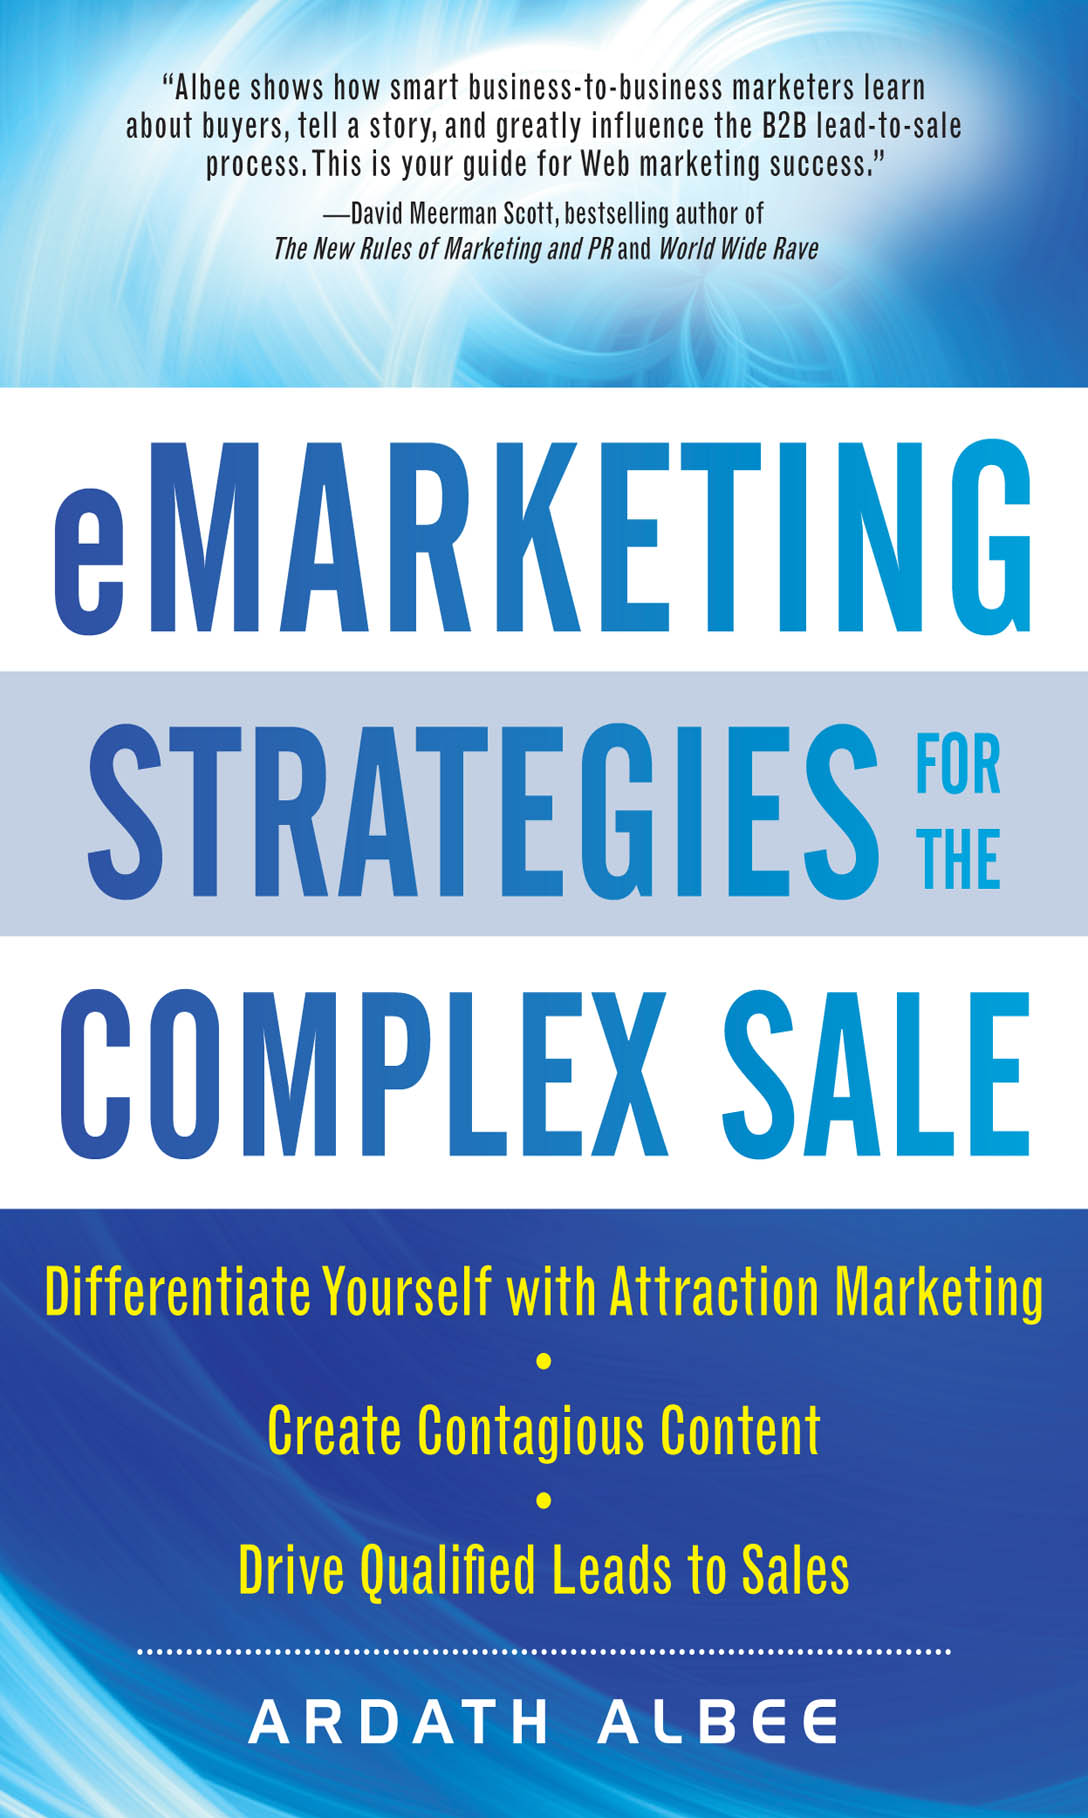 Download Ebook eMarketing Strategies for the Complex Sale by Ardath Albee Pdf